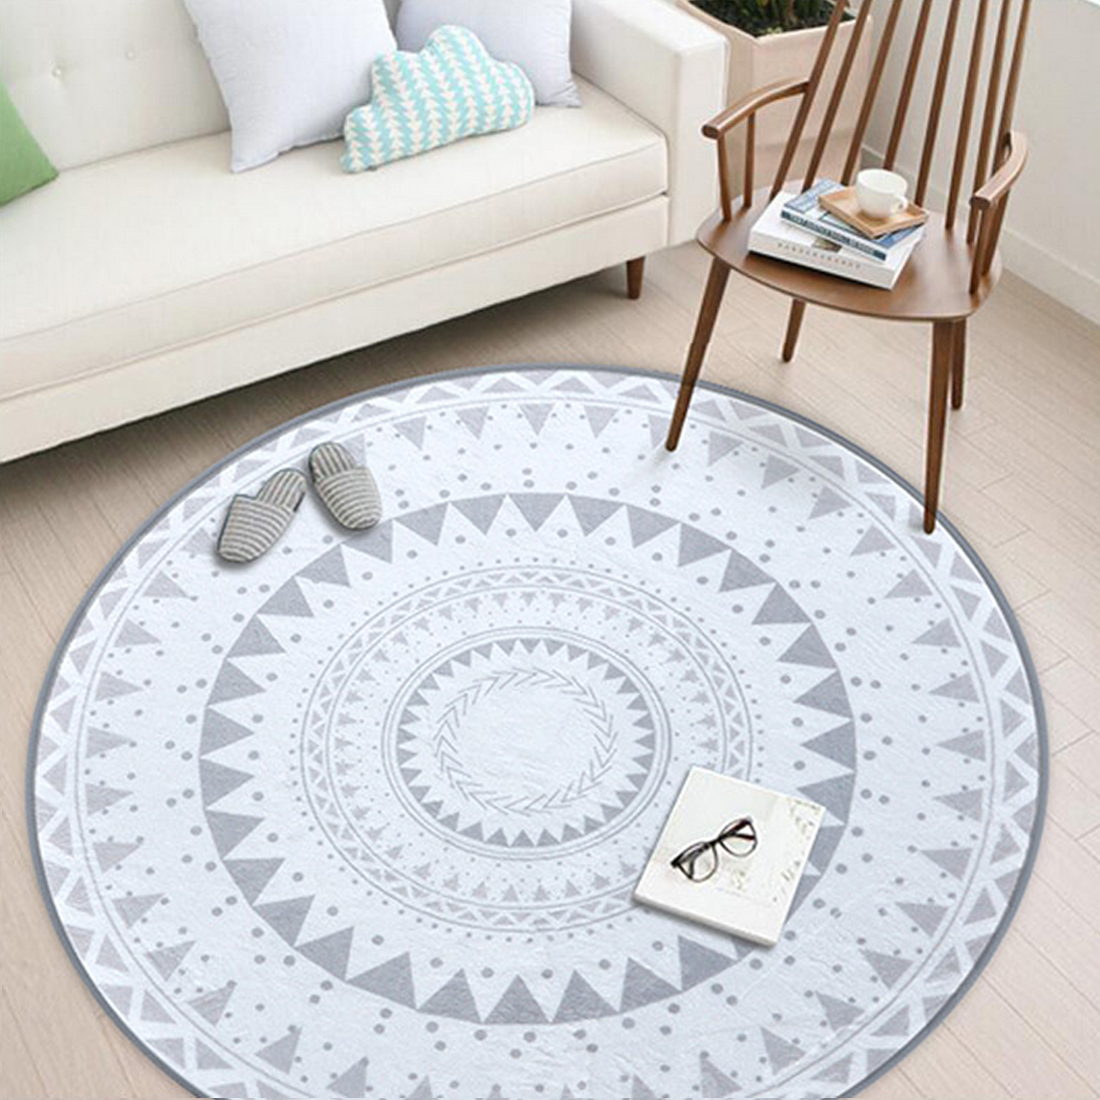 Us 7 75 18 Off Nordic Gray Series Round Carpets For Living Room Computer Chair Area Rug Children Play Tent Floor Mat Cloakroom Rugs And Carpets In